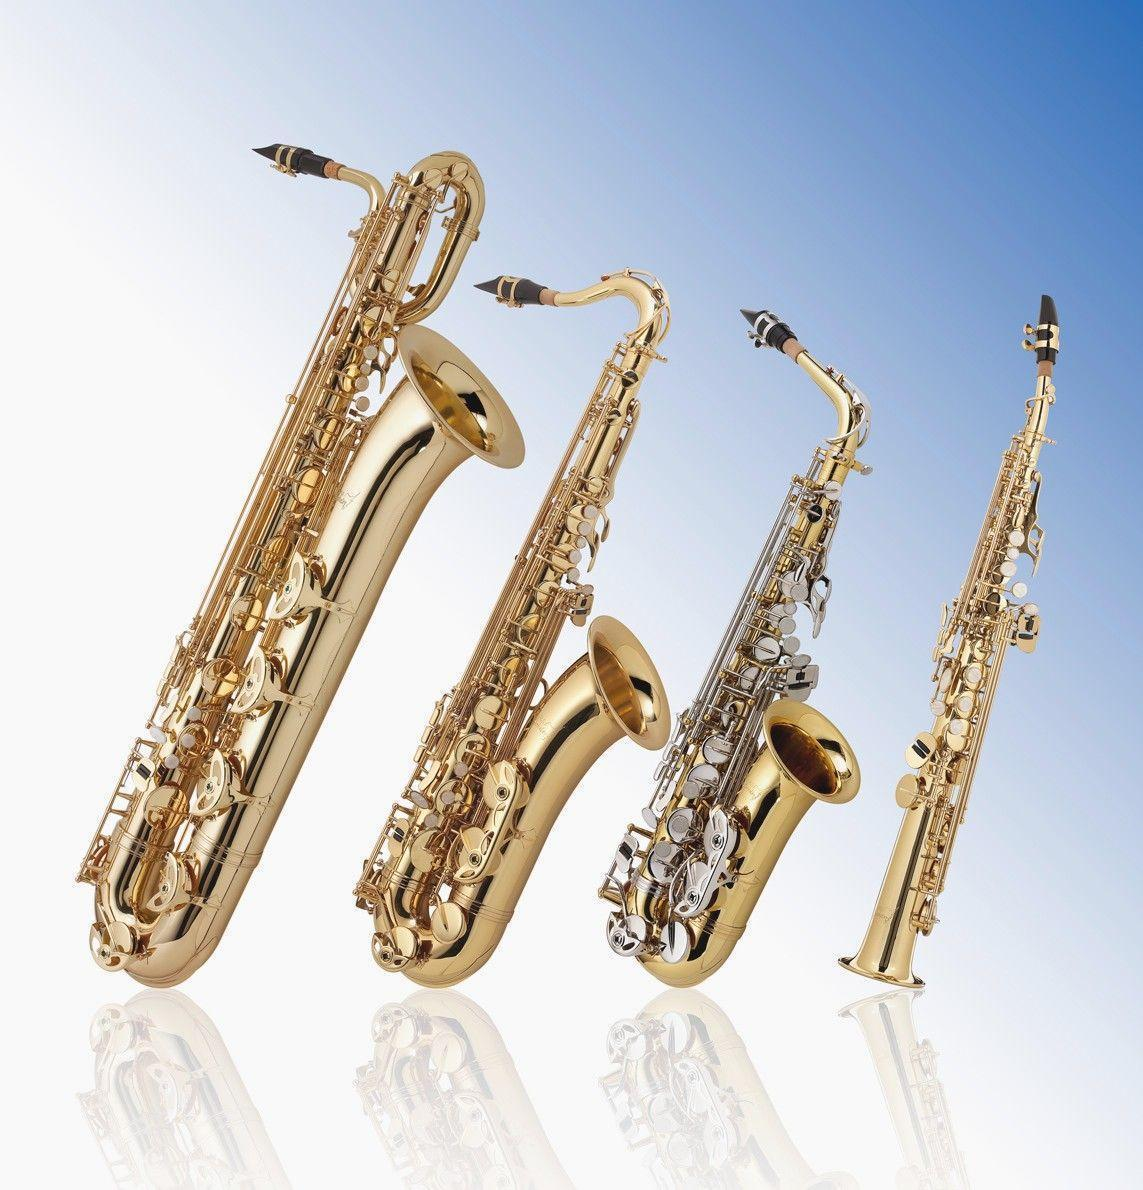 Saxophone Wallpapers HD Download